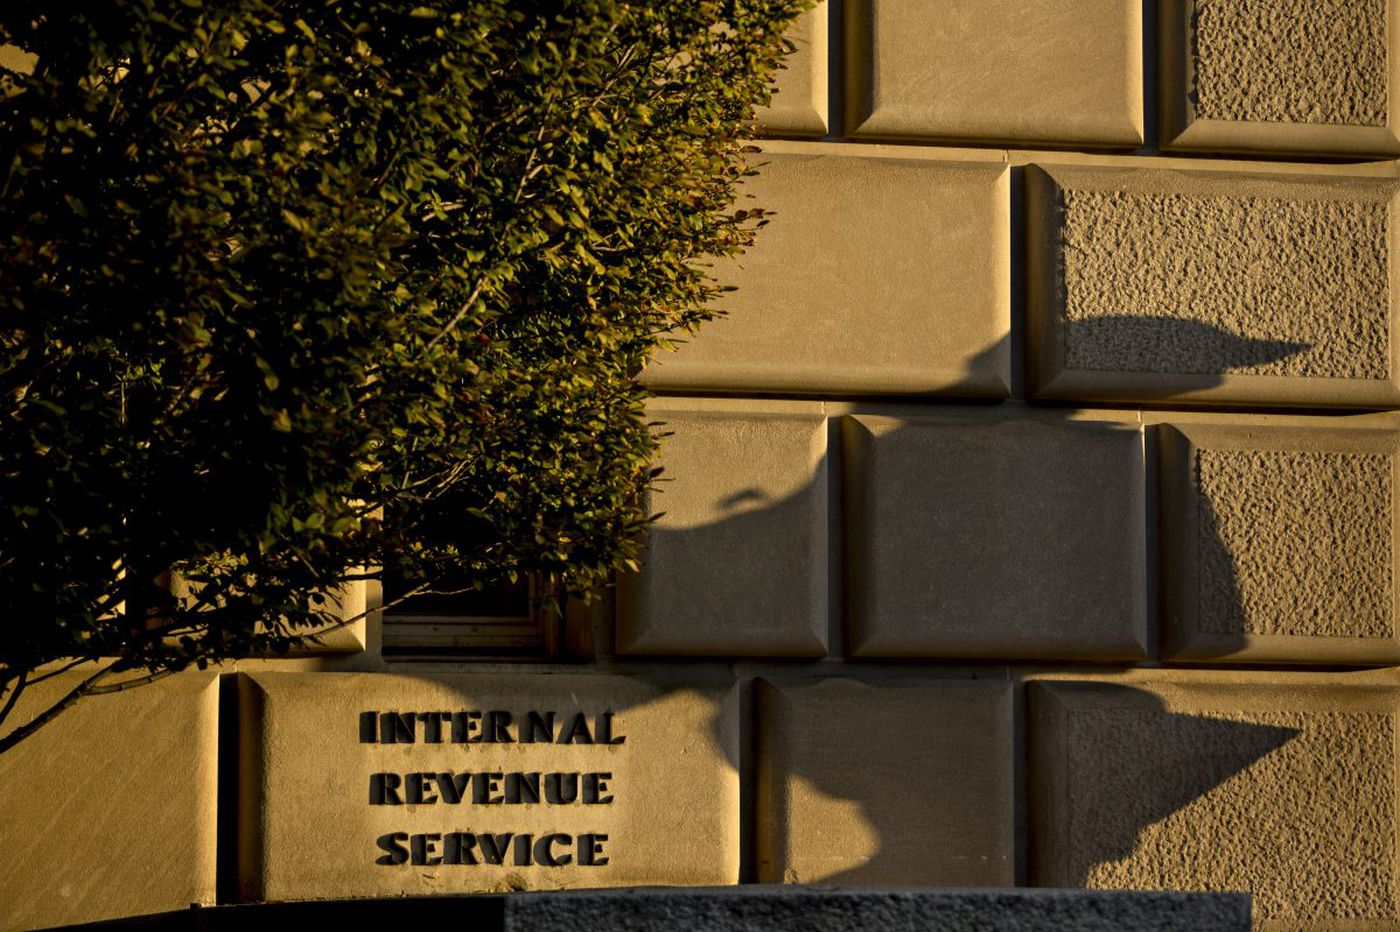 Delivering your tax refund is the least of the IRS's problems